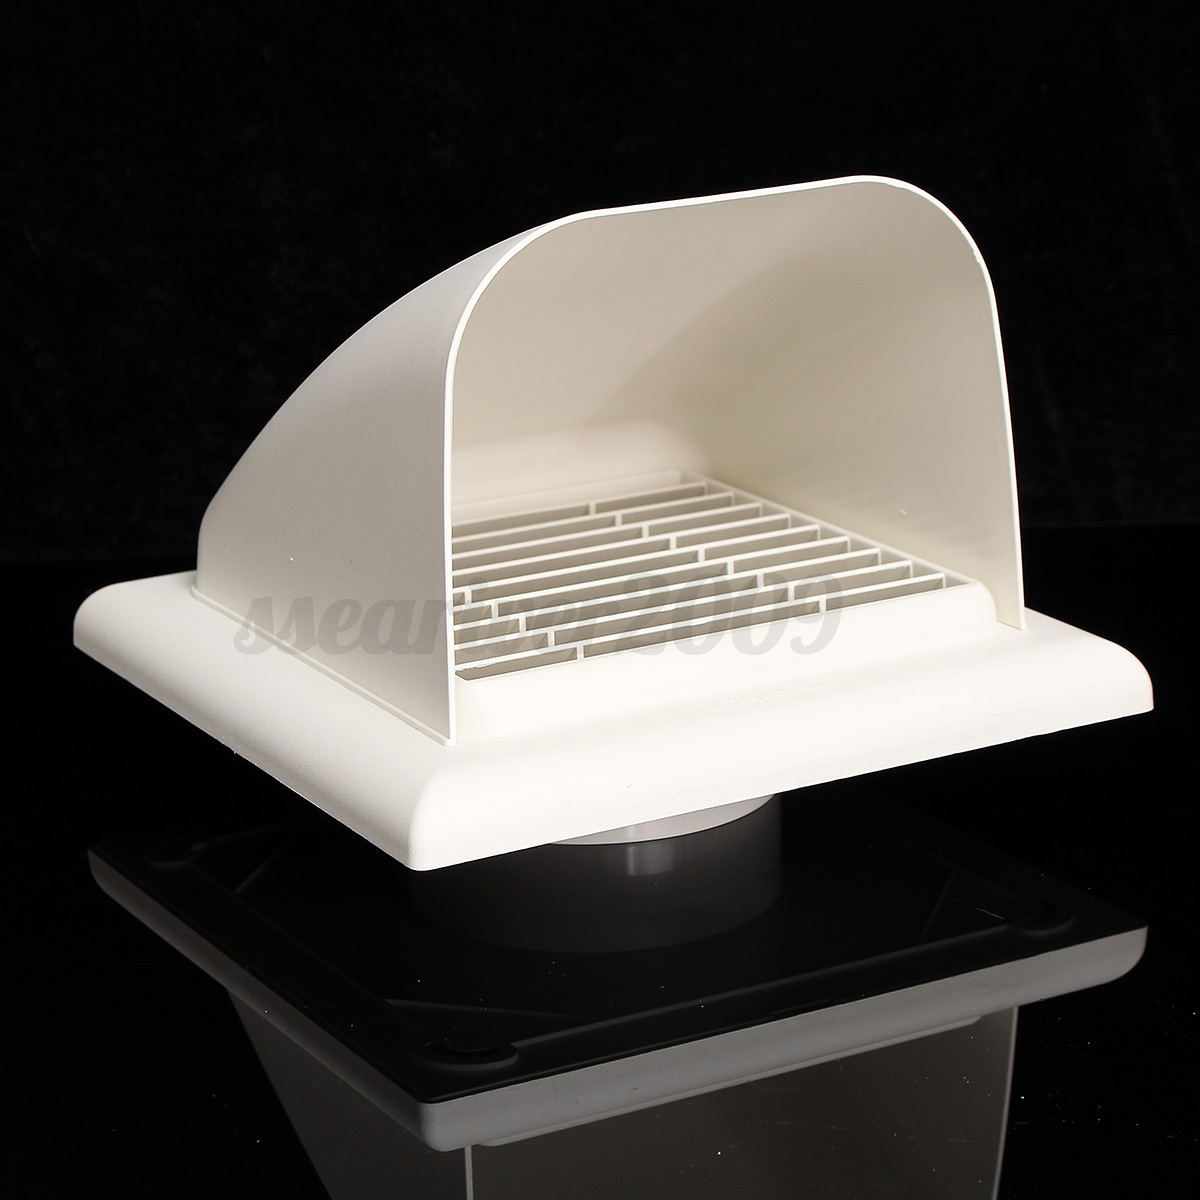 Ducting cowled gravity flap outlet cowl air vent grille